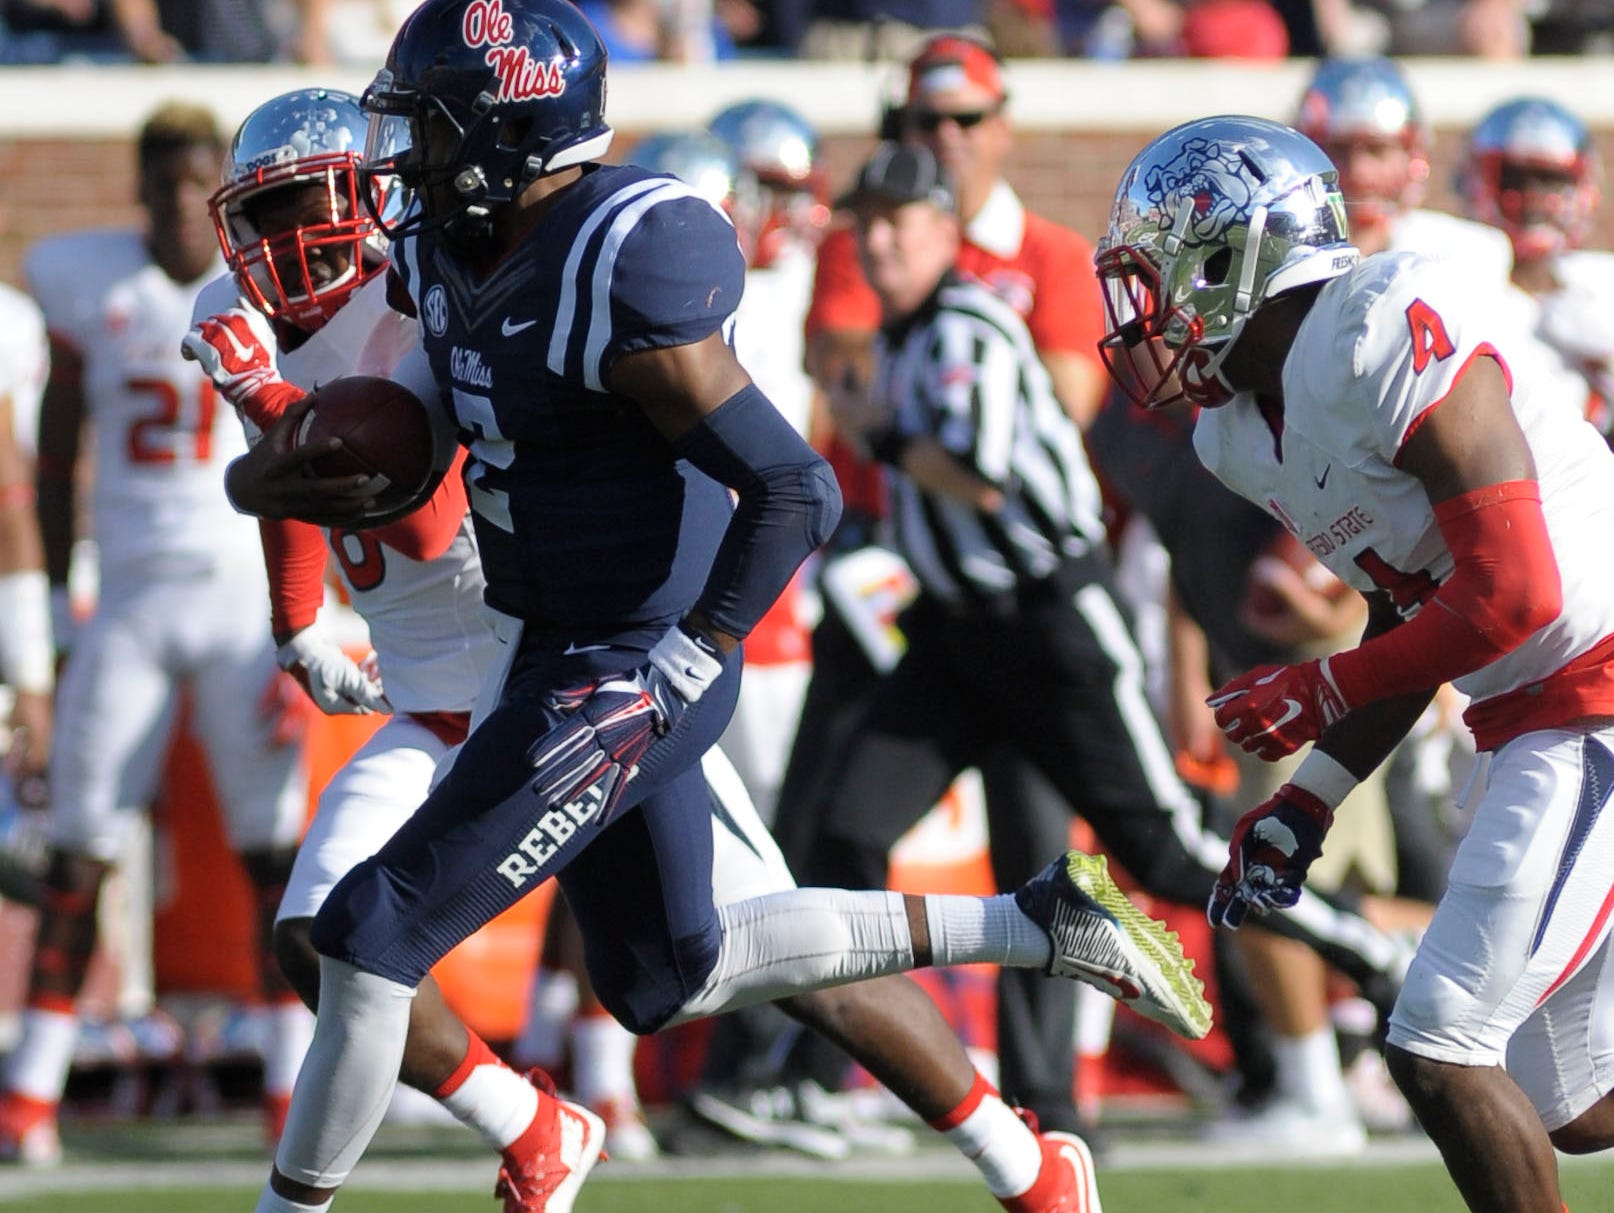 Ole Miss defensive back Tee Shepard returns an interception against Fresno State last Saturday. Shepard will miss the first half of Saturday's game against No. 2 Alabama after being ejected following a targeting call against the Bulldogs.